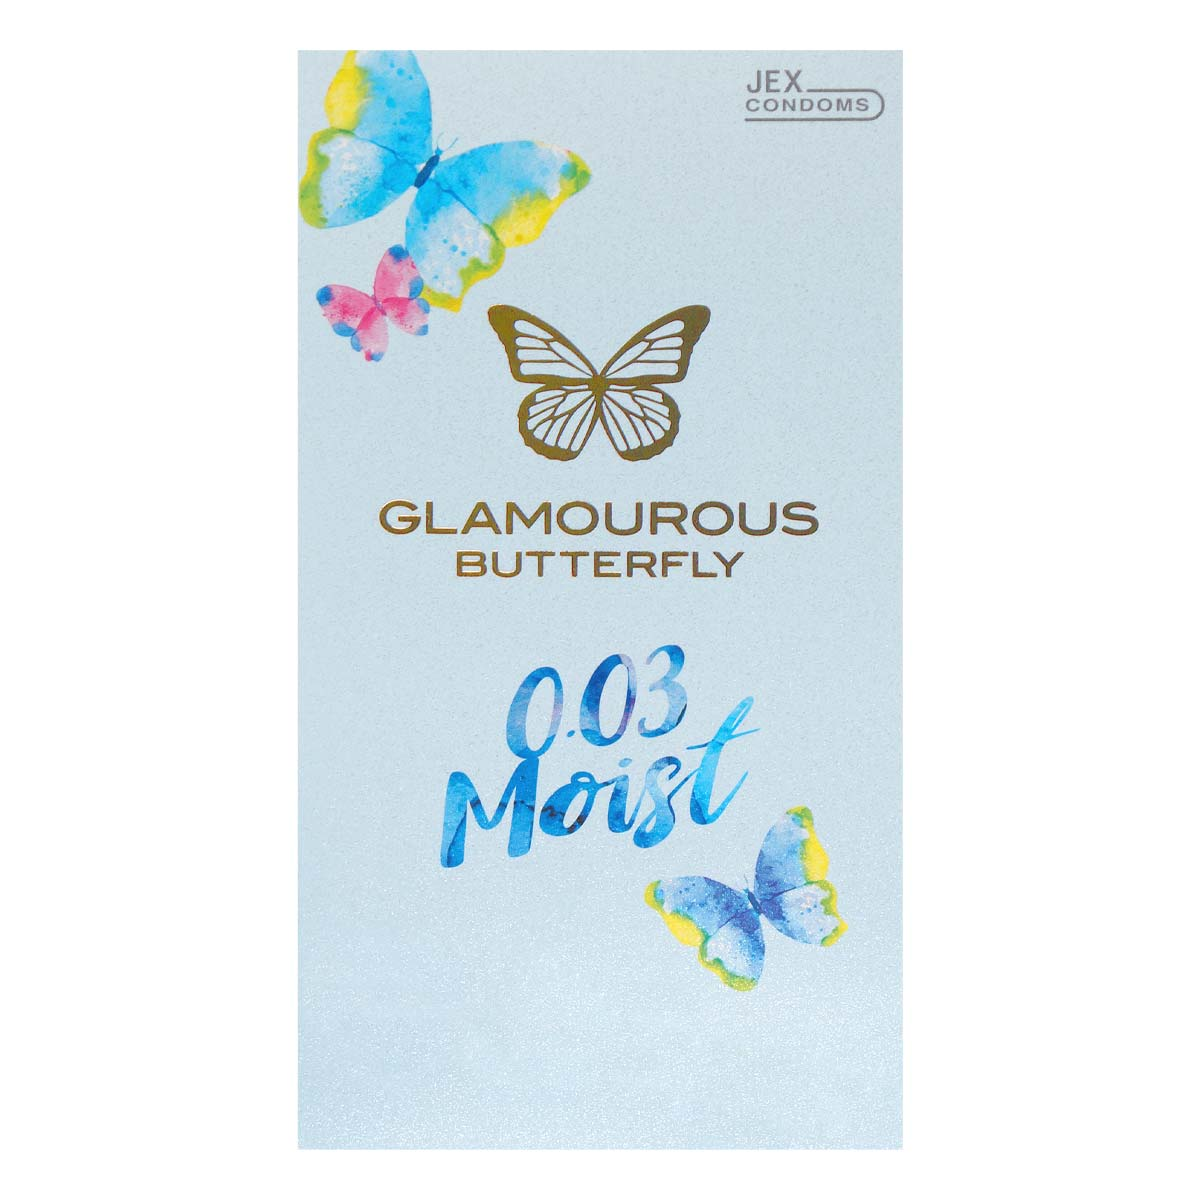 Glamourous Butterfly 0.03 Moist Type 10's Pack Latex Condom